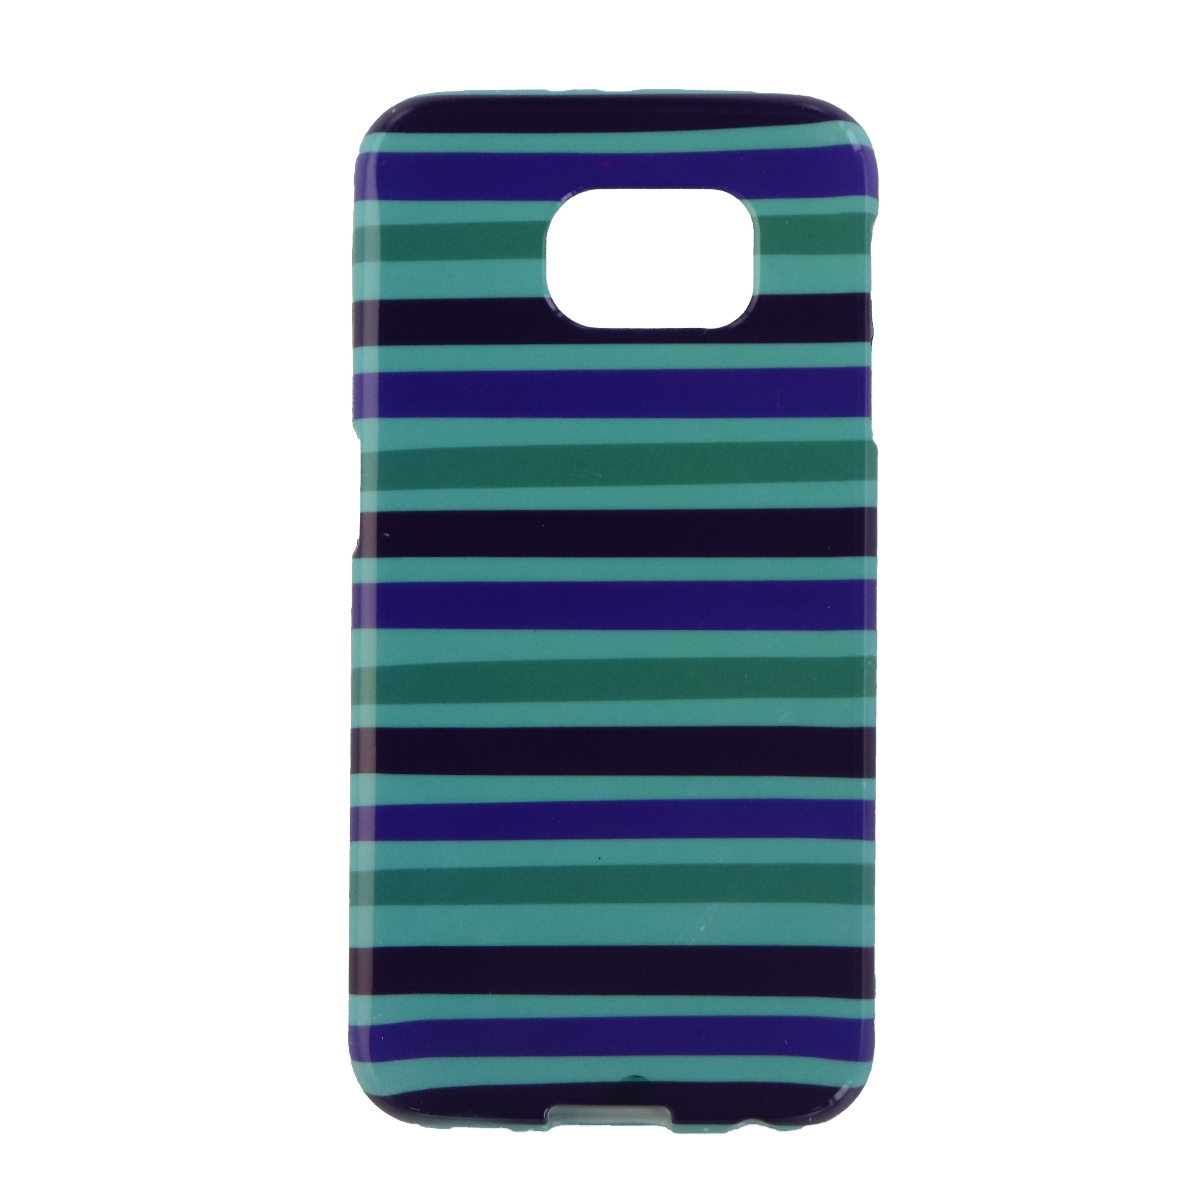 Insignia Soft Shell Protective Case Cover for Galaxy S6 - Green / Blue